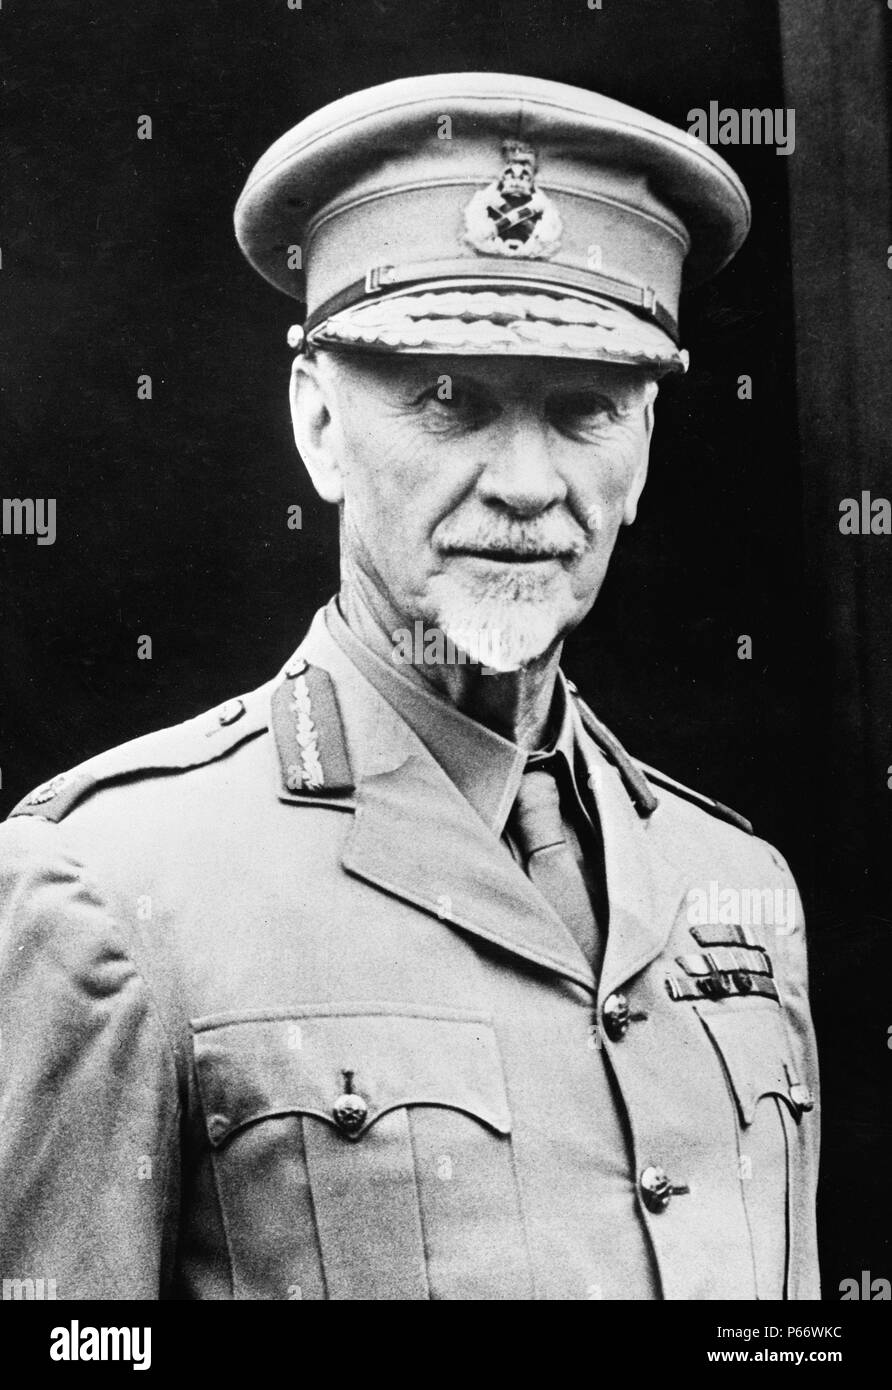 Jan Christiaan Smuts, (1870-1950) A prominent South African and British Commonwealth statesman, military leader and philosopher. In addition to holding various cabinet posts, he served as Prime Minister of the Union of South Africa from 1919 until 1924 and from 1939 until 1948. - Stock Image